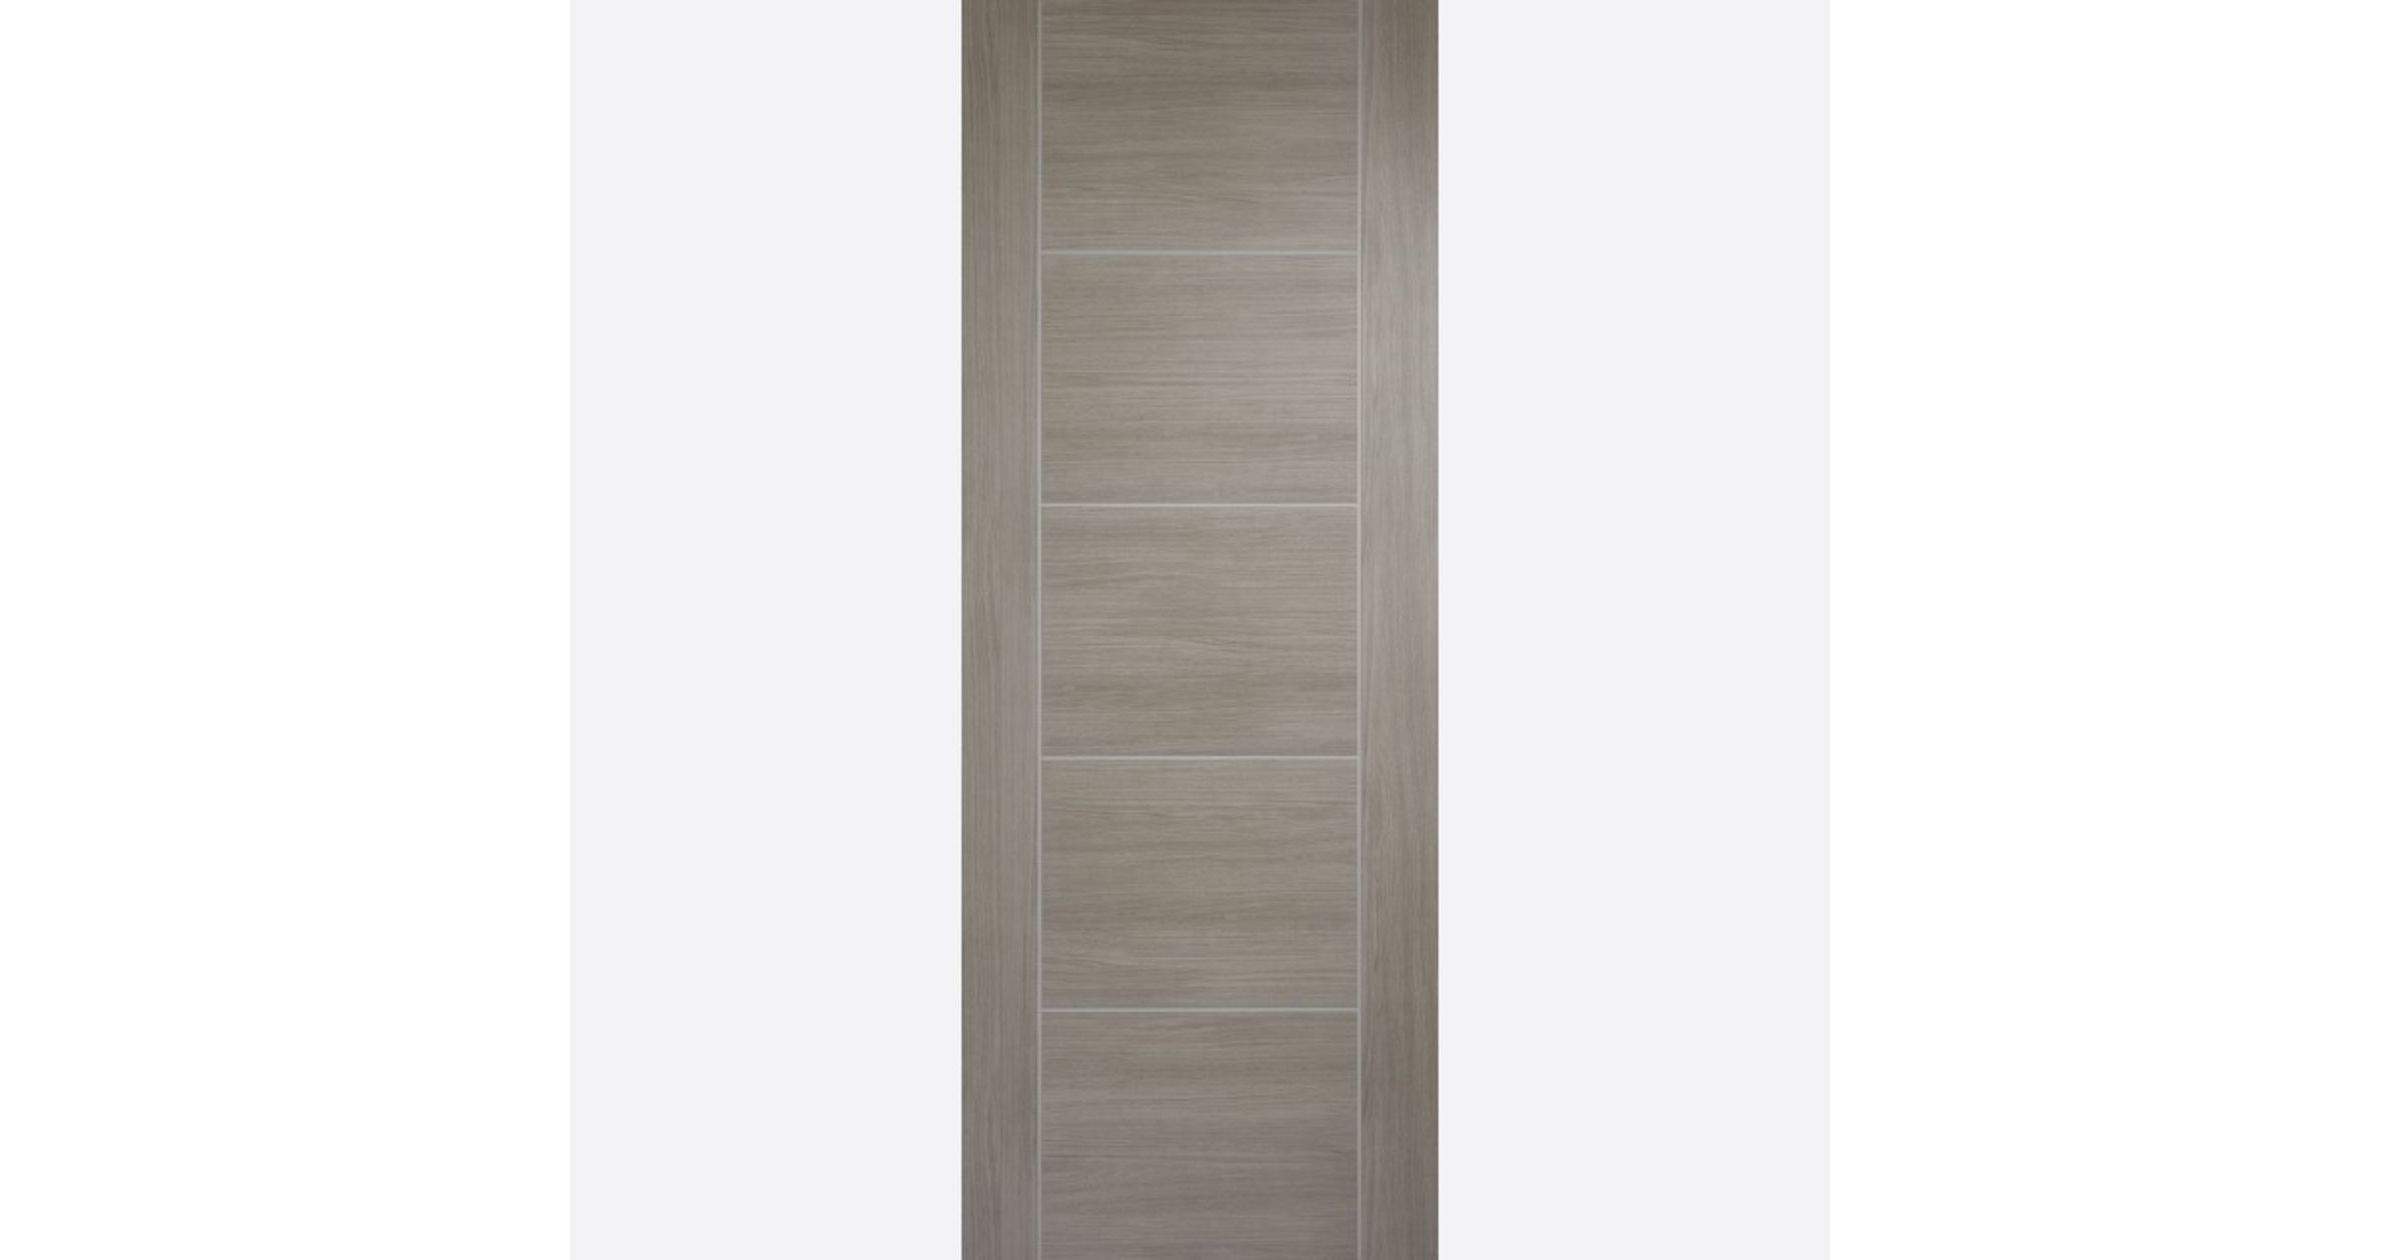 Vancouver Door Flush *Pre-Finished Light Grey Laminate* 35mm Internal - LPD Laminate Doors & Vancouver Door: Flush *Pre-Finished Light Grey Laminate* 35mm Internal - LPD Laminate Doors